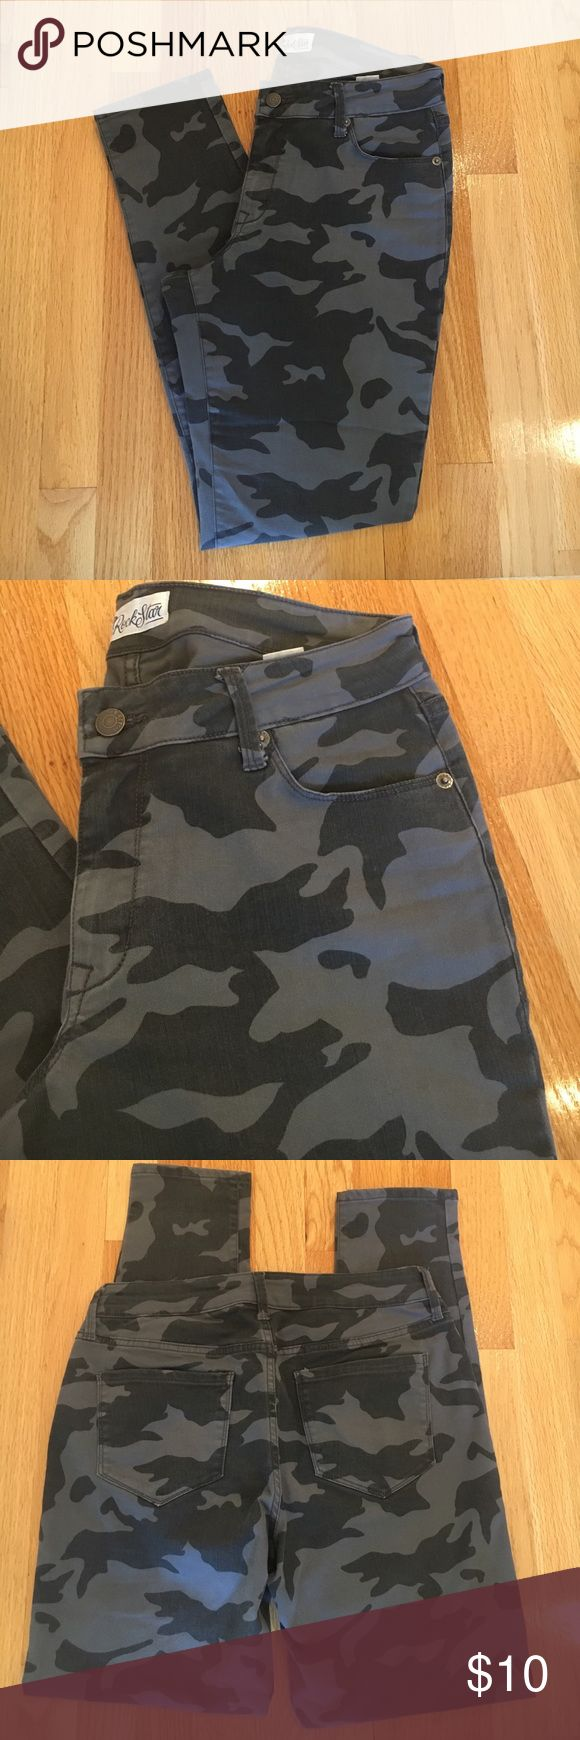 Old Navy camouflage skinny pant 🍰excellent condition, has stretch! 14 1/2 inch waist, 8 1/2 inch rise, and 29 1/2 inch inseam Old Navy Pants Skinny